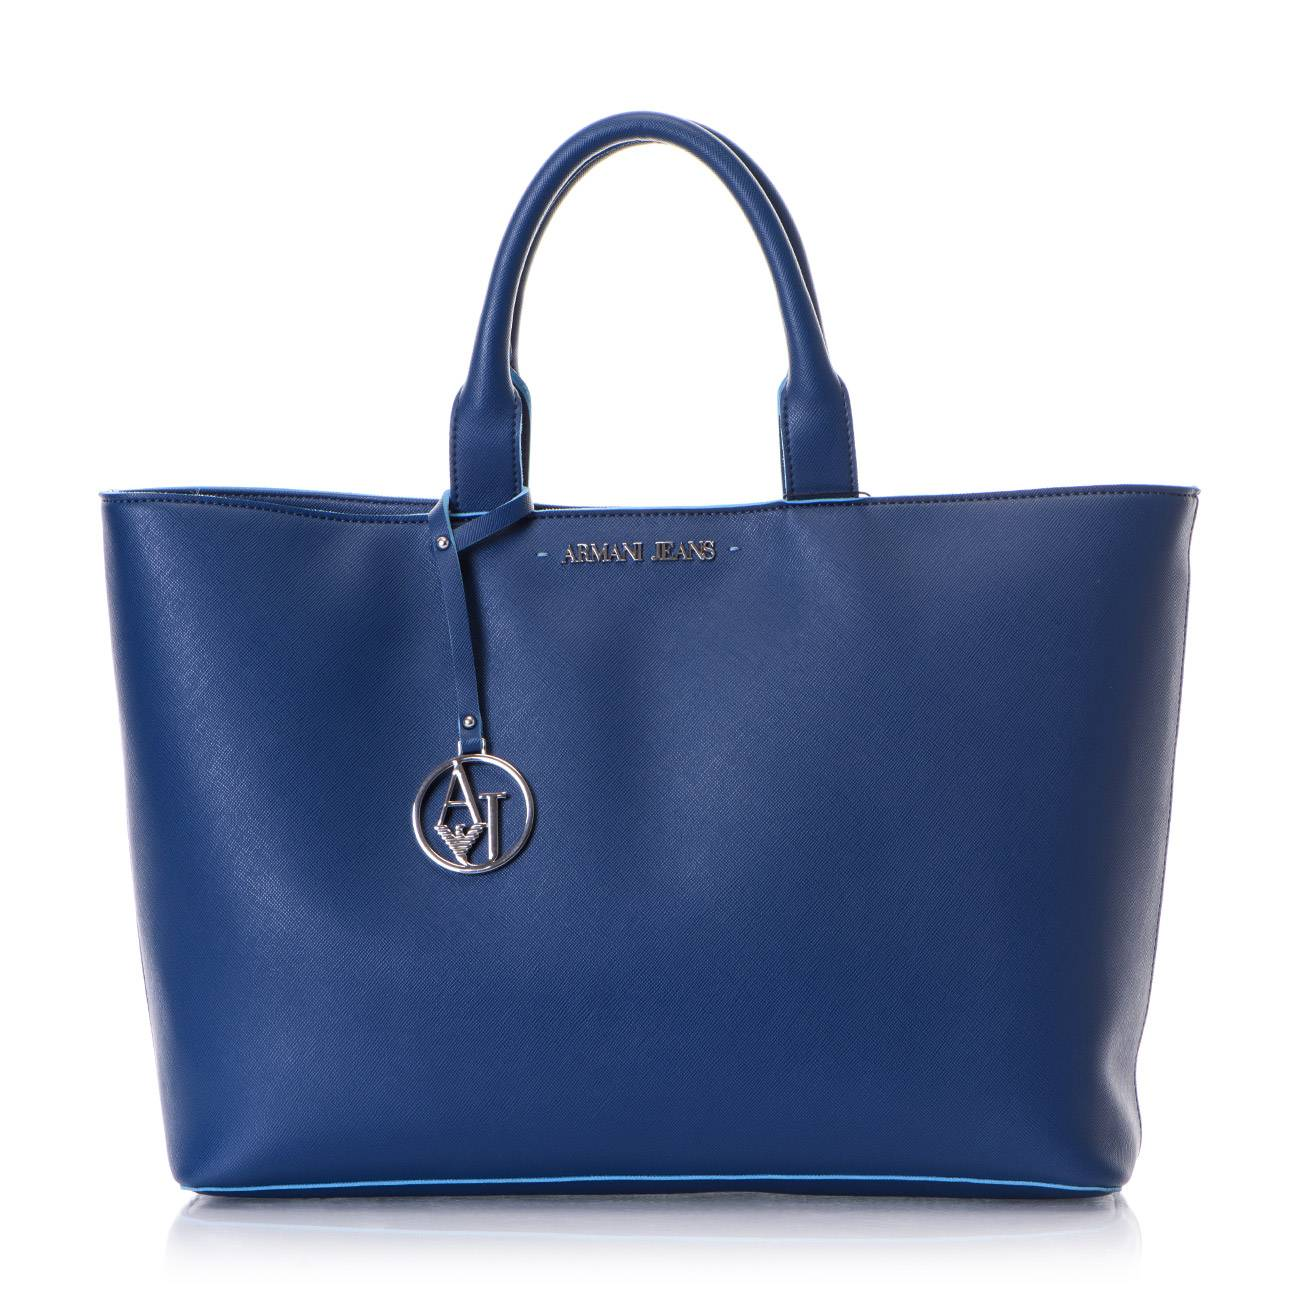 OCEAN BLUE SHOPPER BAG